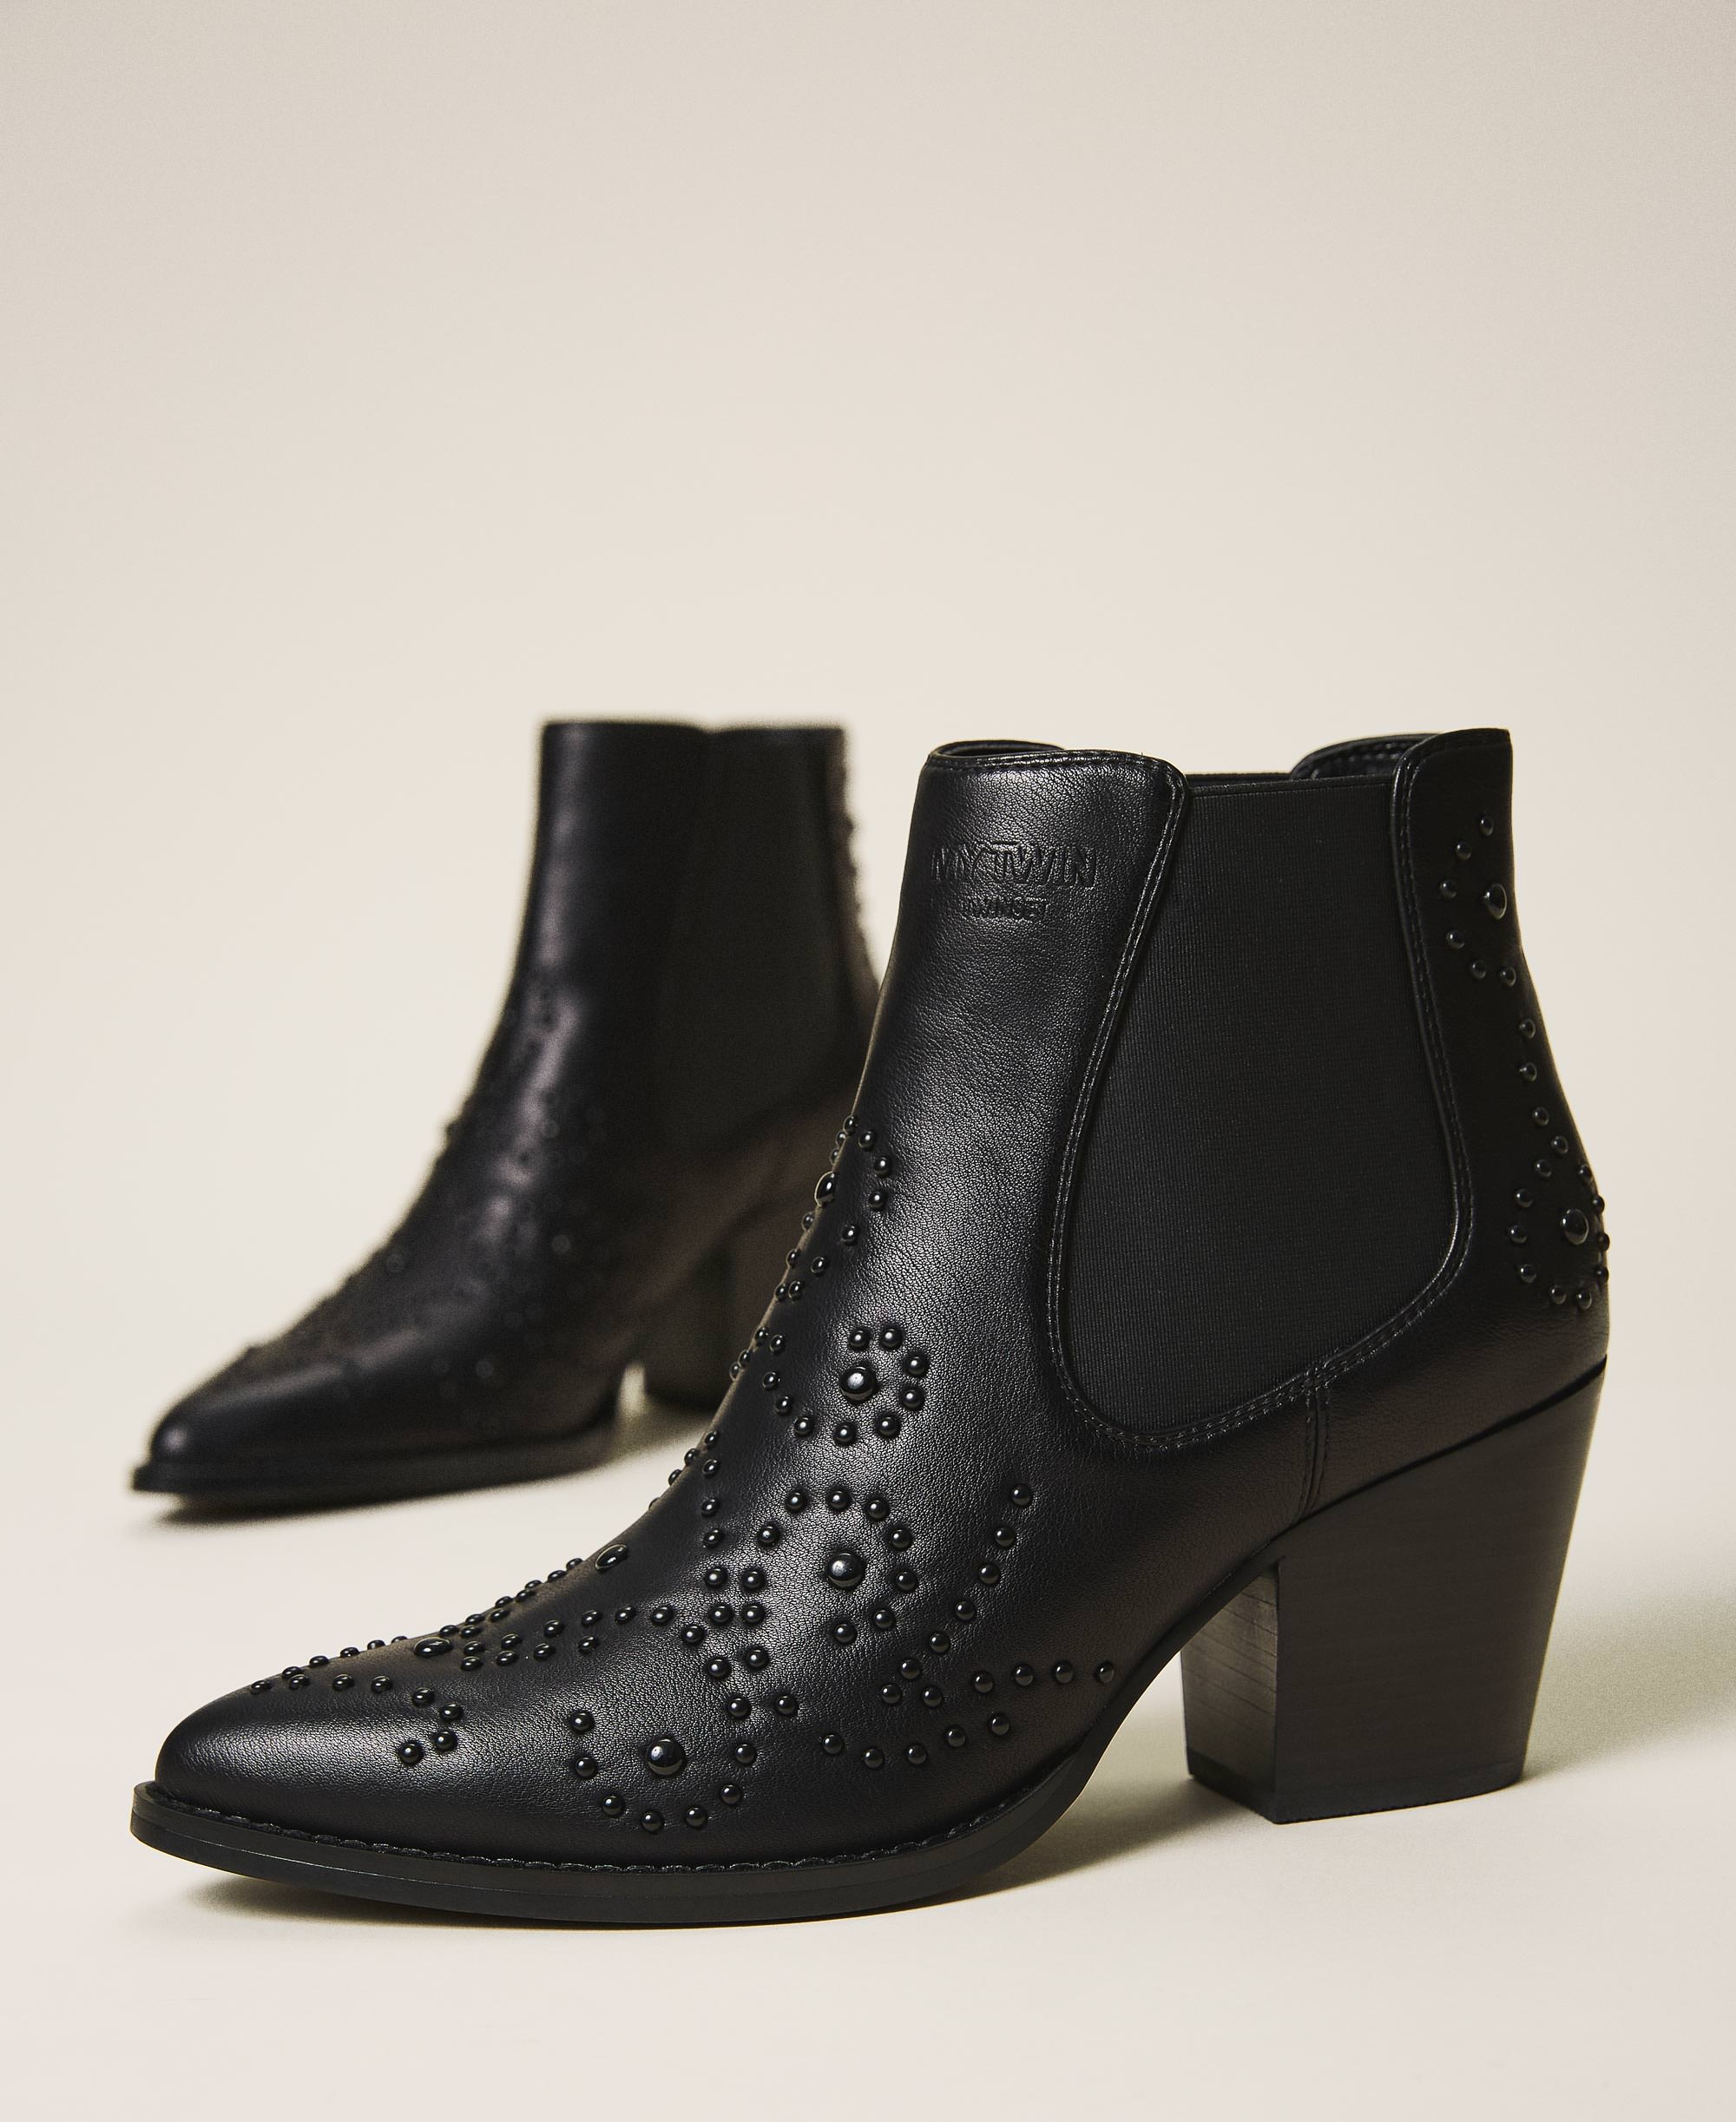 Texas ankle boots with pearls Woman